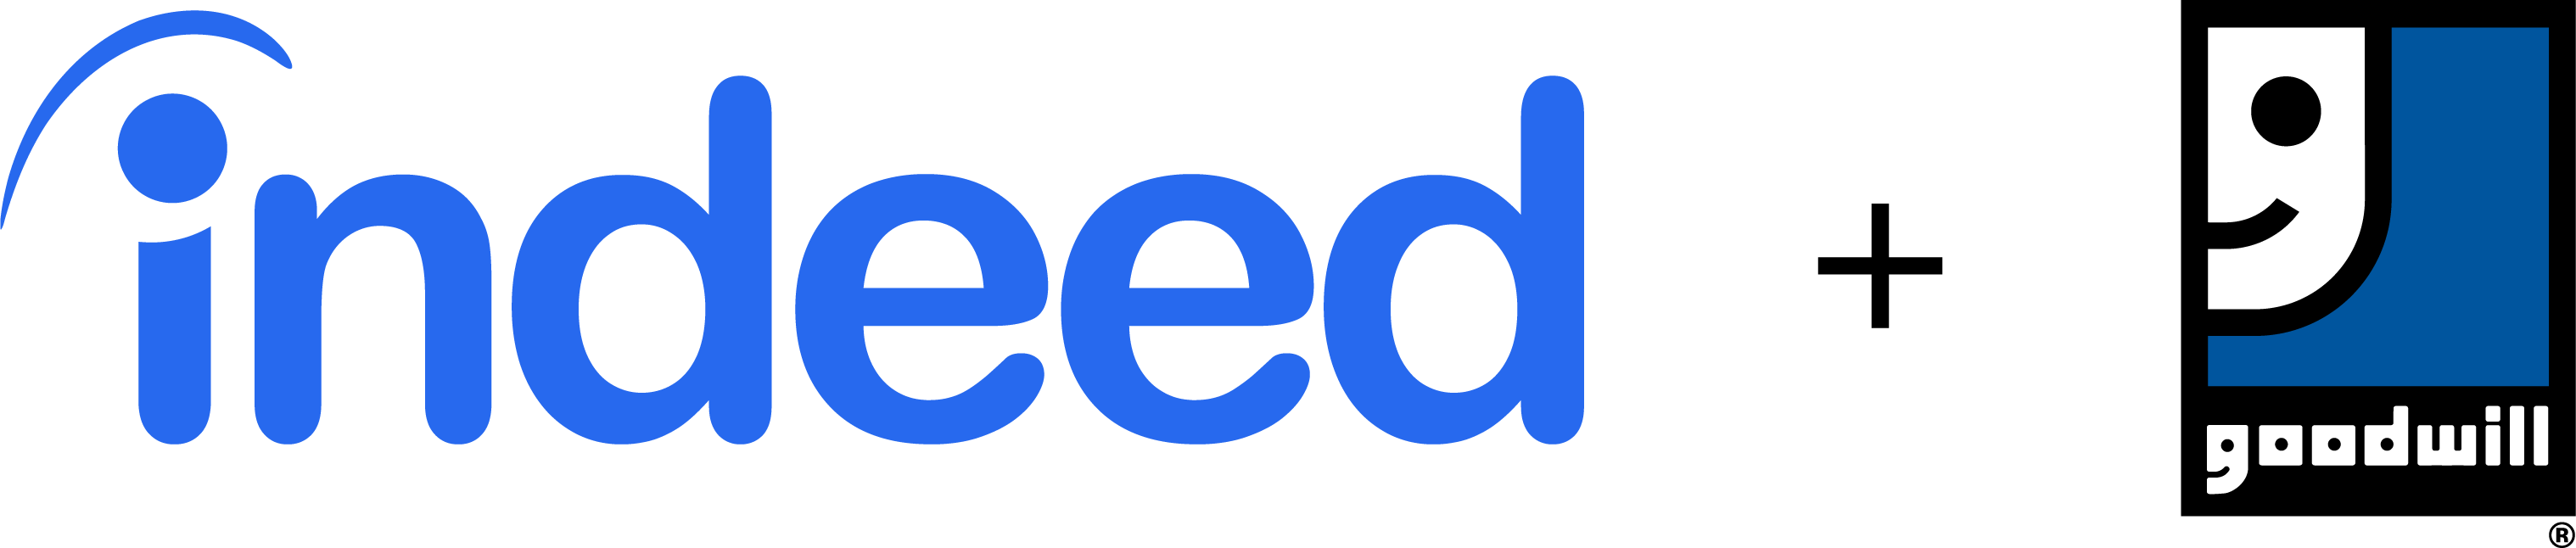 Indeed and Goodwill logo